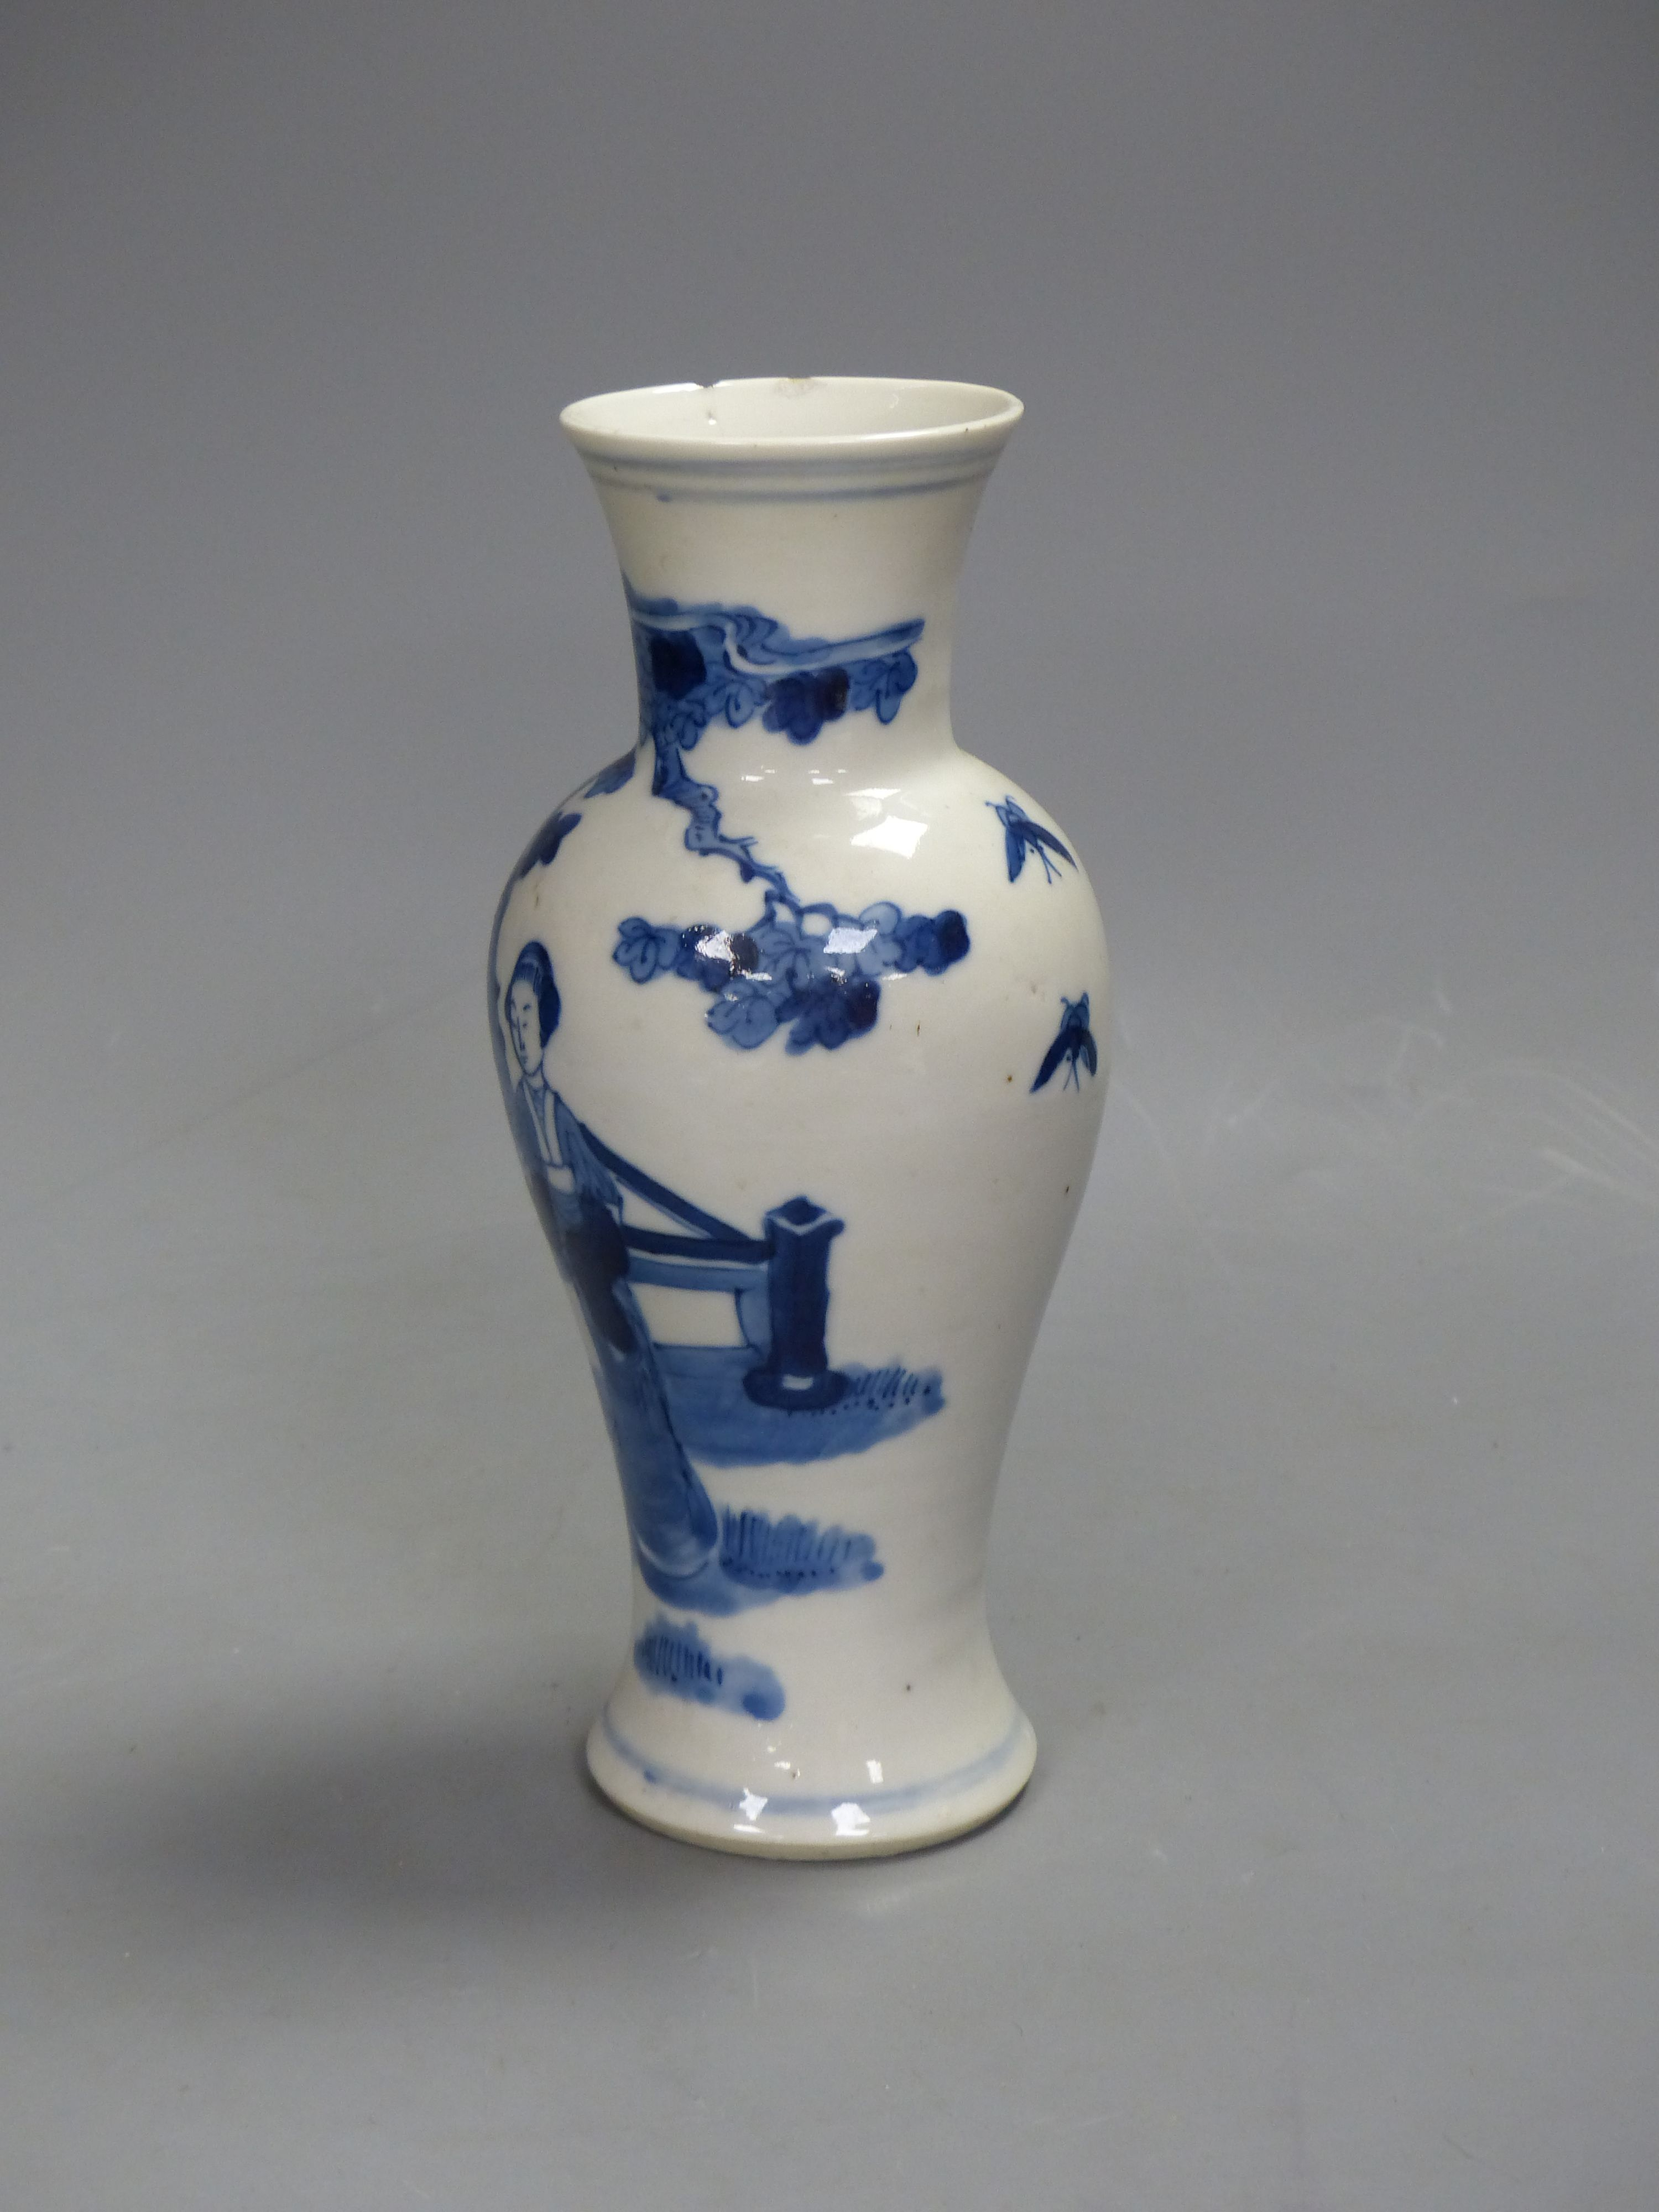 A 19th century Chinese blue and white vase, height 21cm - Image 2 of 4